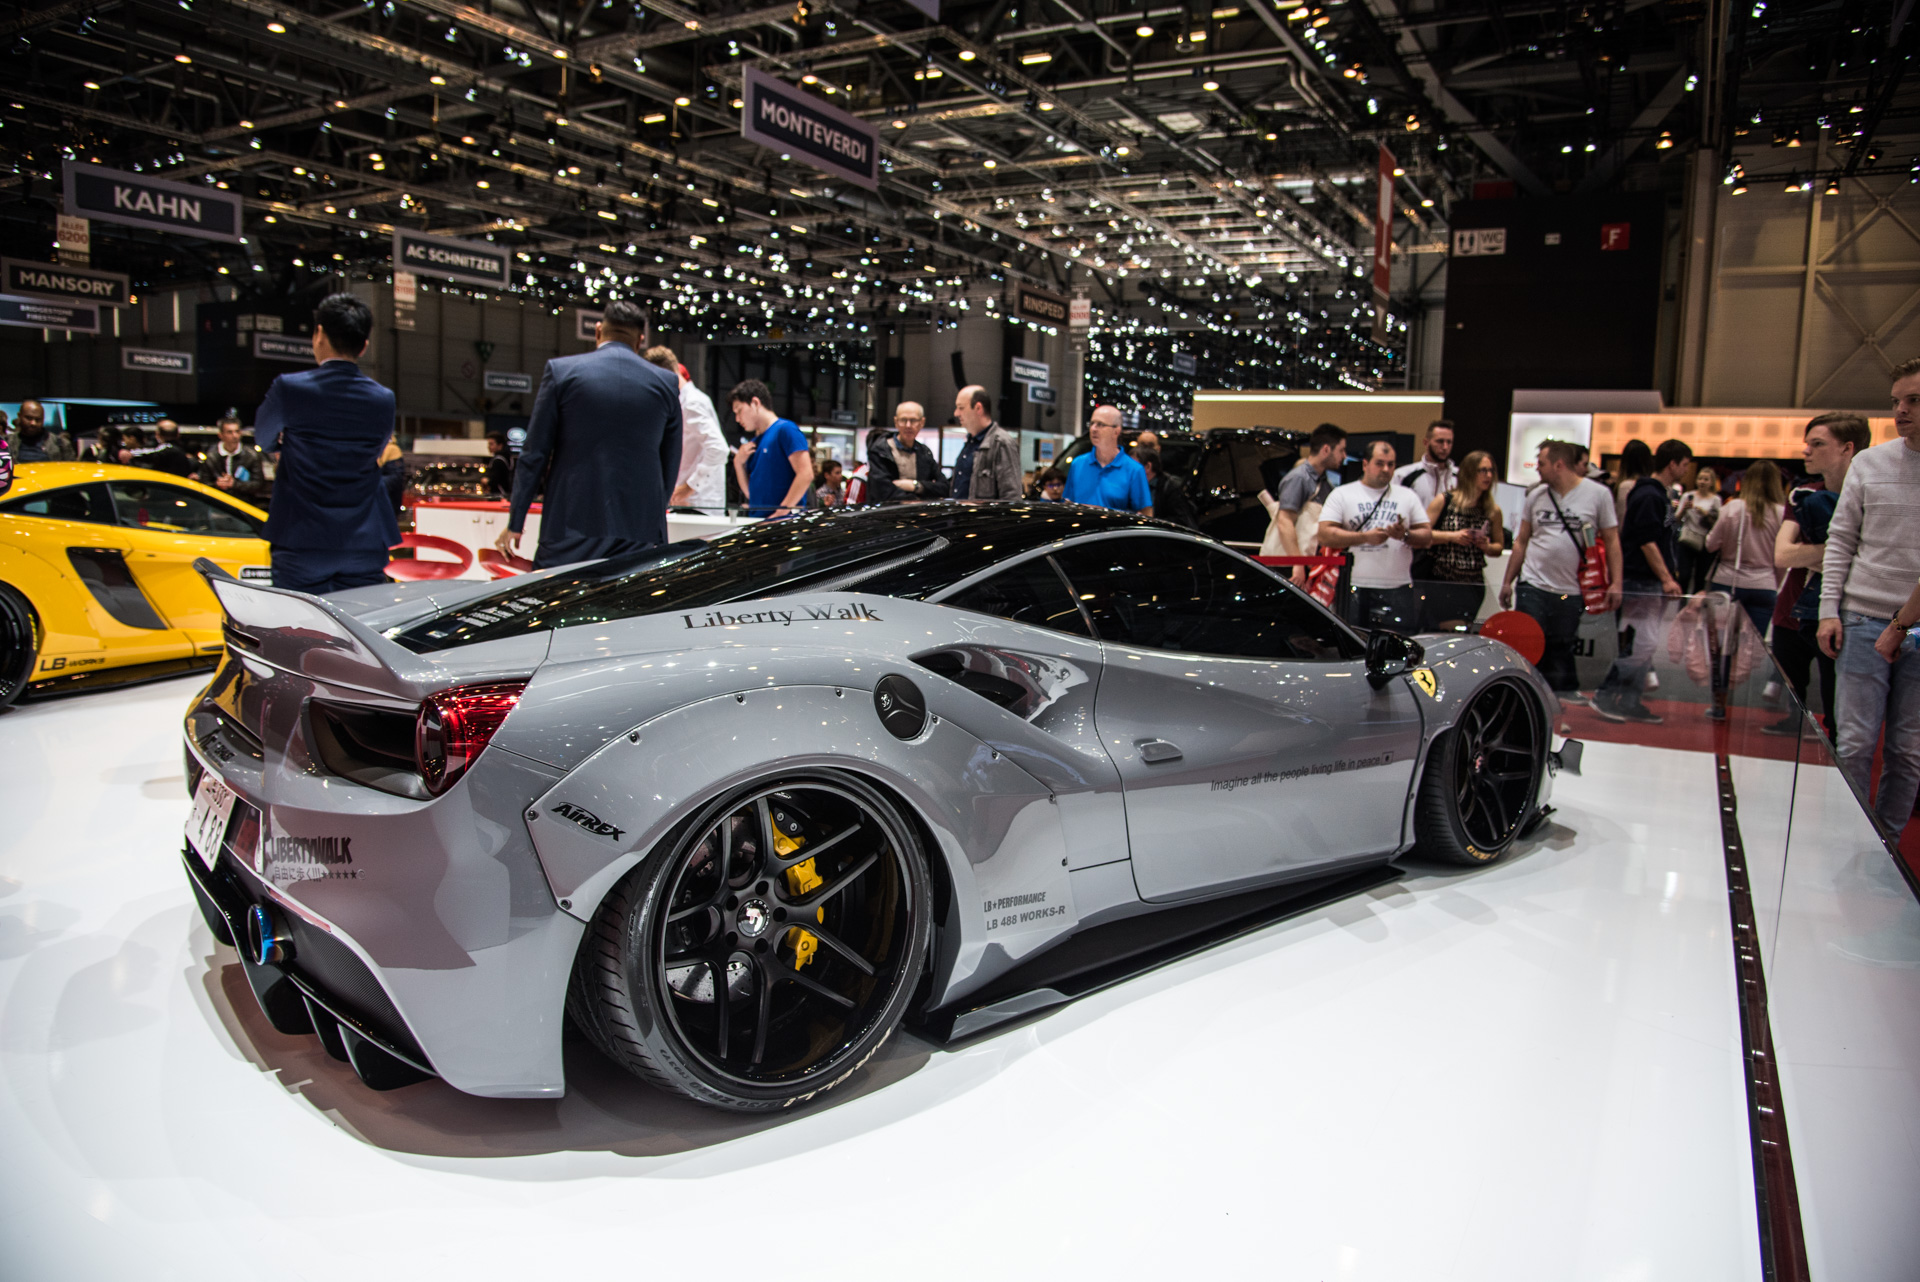 geneva-international-motor-show-igor-sinitsin-40